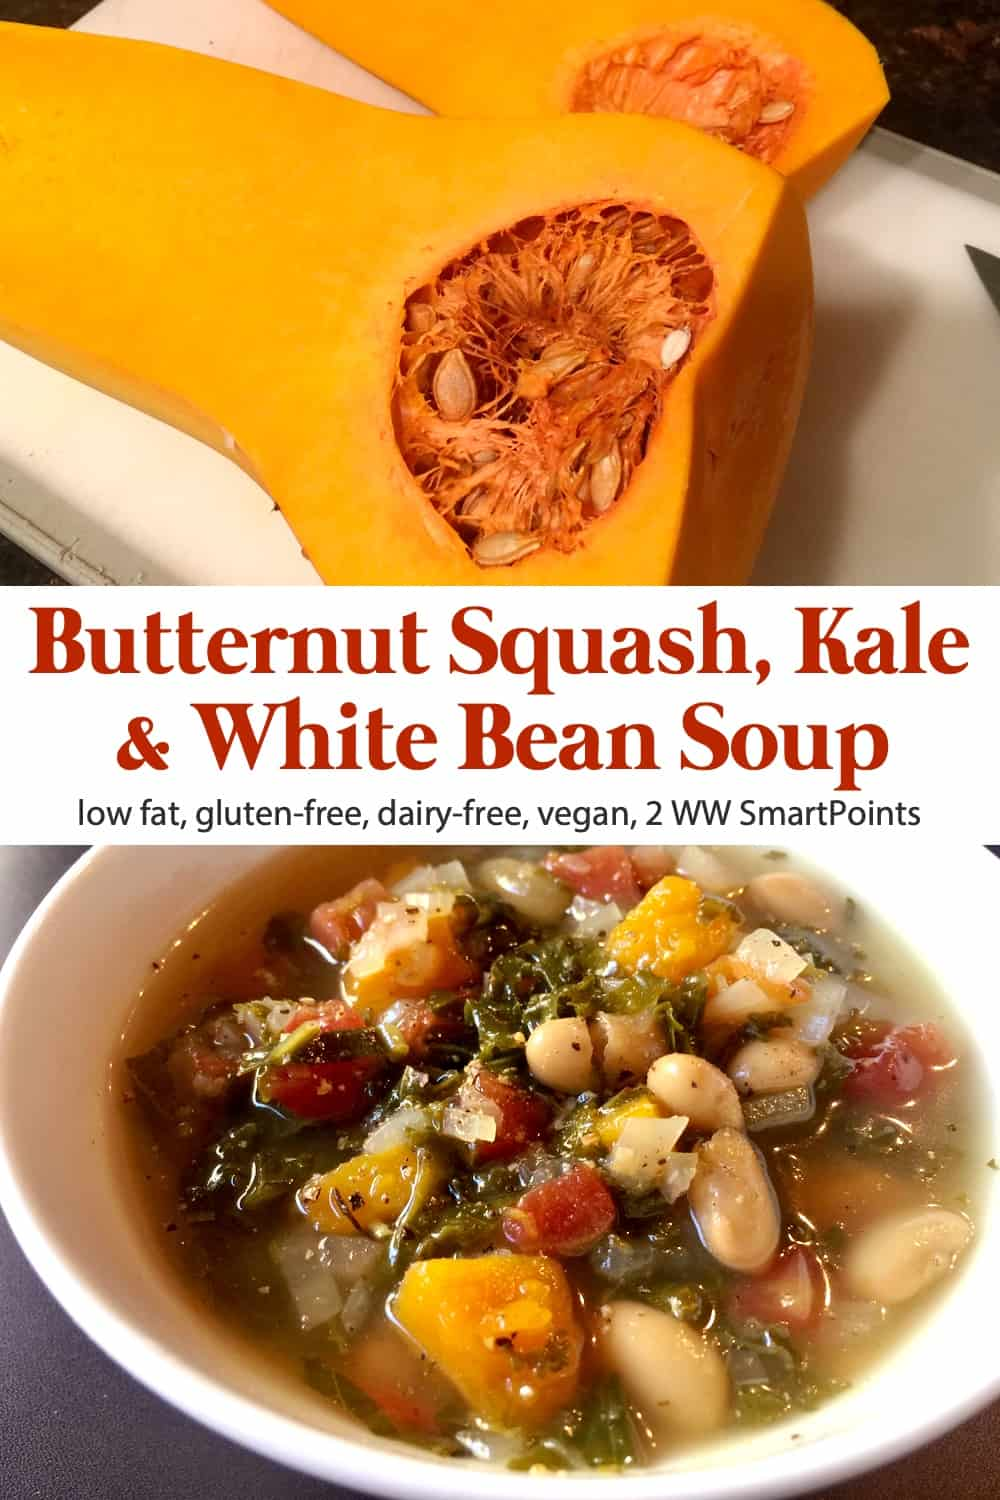 This cozy kale, white bean and butternut squash soup provides the ultimate in soul-satisfying, tastebud pleasing, nourishing goodness. Three highly nutritious foods come together in this tasty one pot vegetarian meal in a bowl that's low-fat, gluten-free and dairy-free! #butternutsquashkalewhitebeansoup #butternutsquashsoup #butternutsquash #whitebeansoup #glutenfree #dairyfree #vegan #ww #wwfamily #weightwatchers